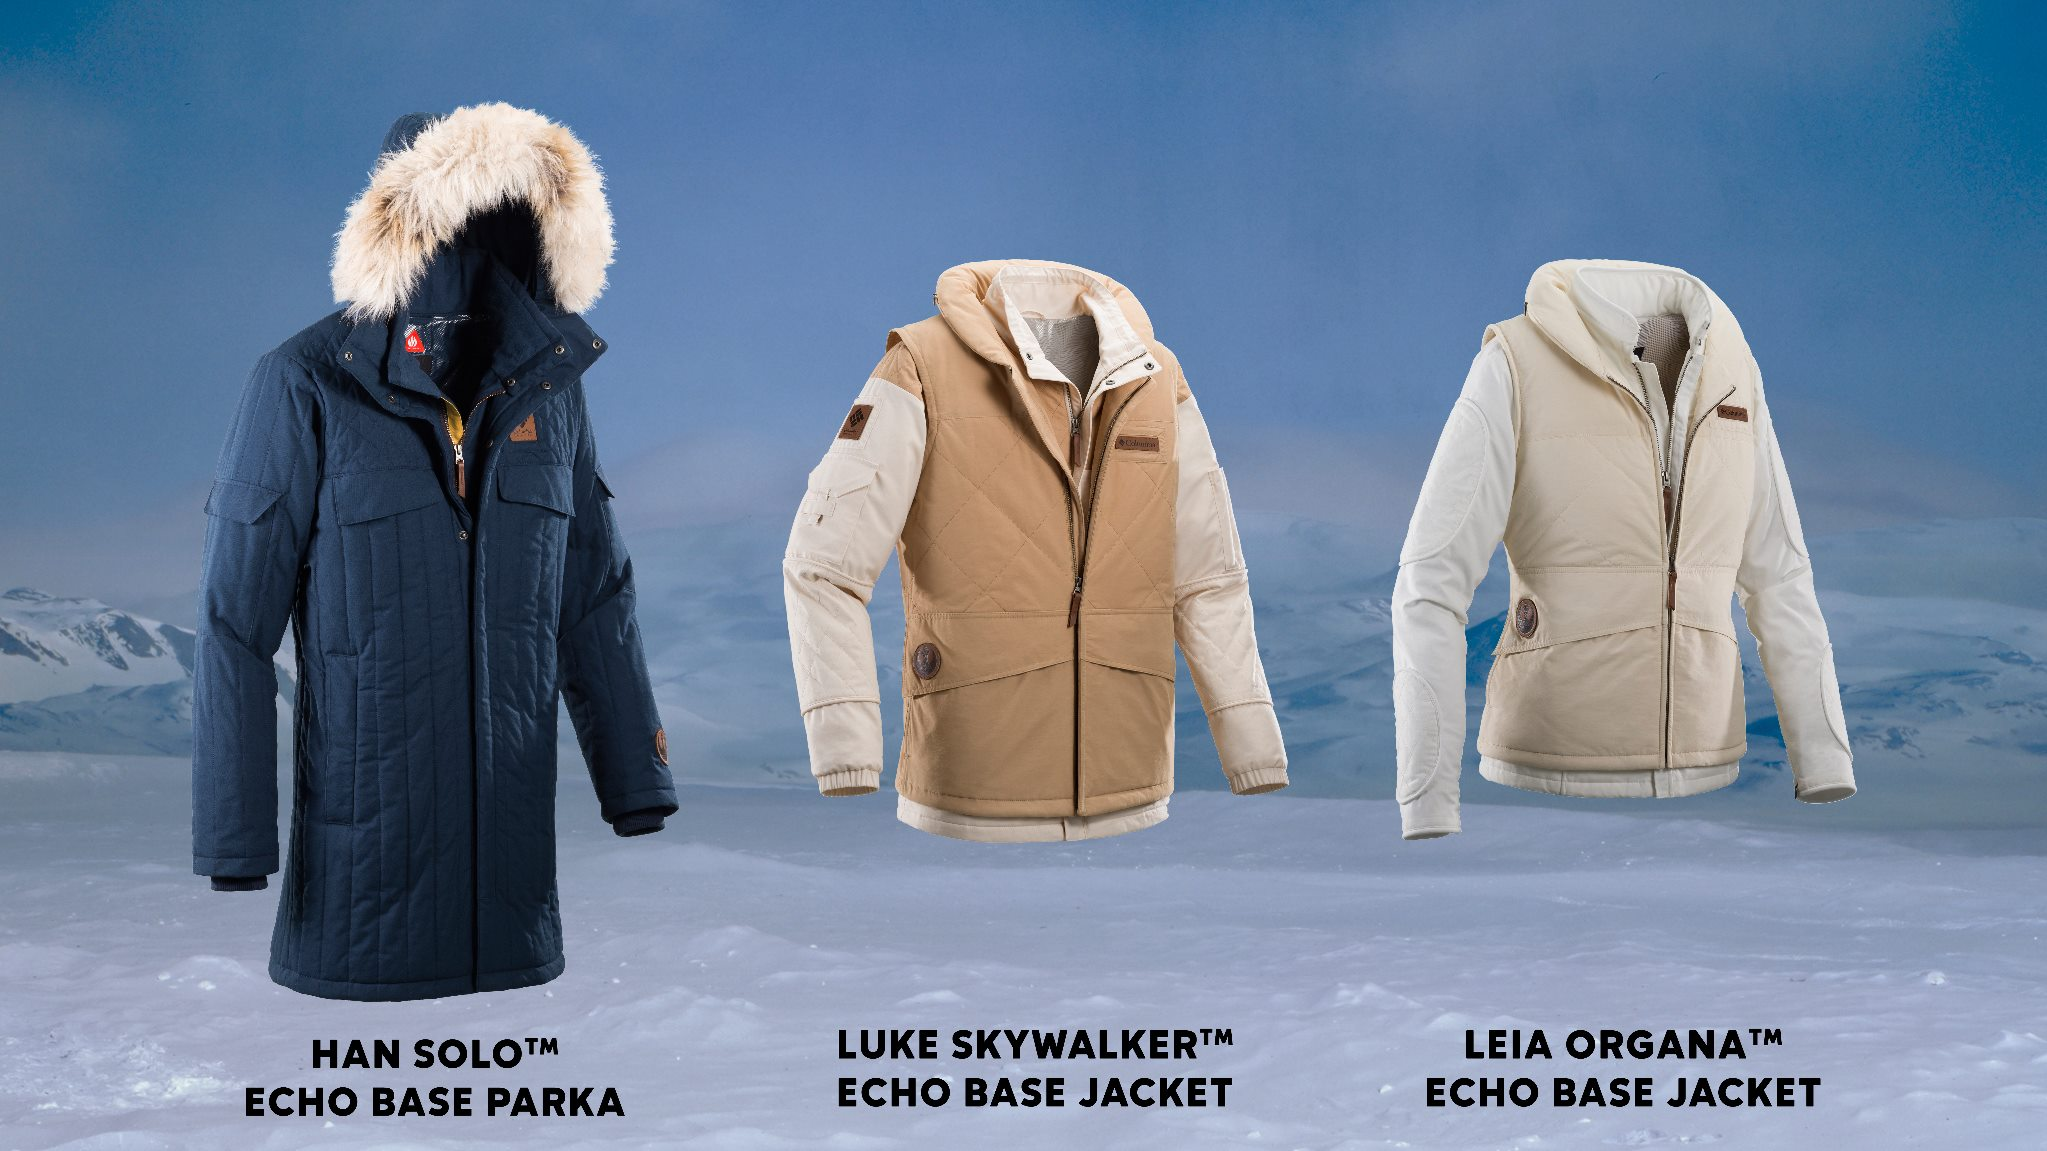 Columbia Echo Base Collection Star Wars Jackets The Coolector Visval Khaki Are Available In A Number Of Different Styles Taking Their Inspiration From Worn By